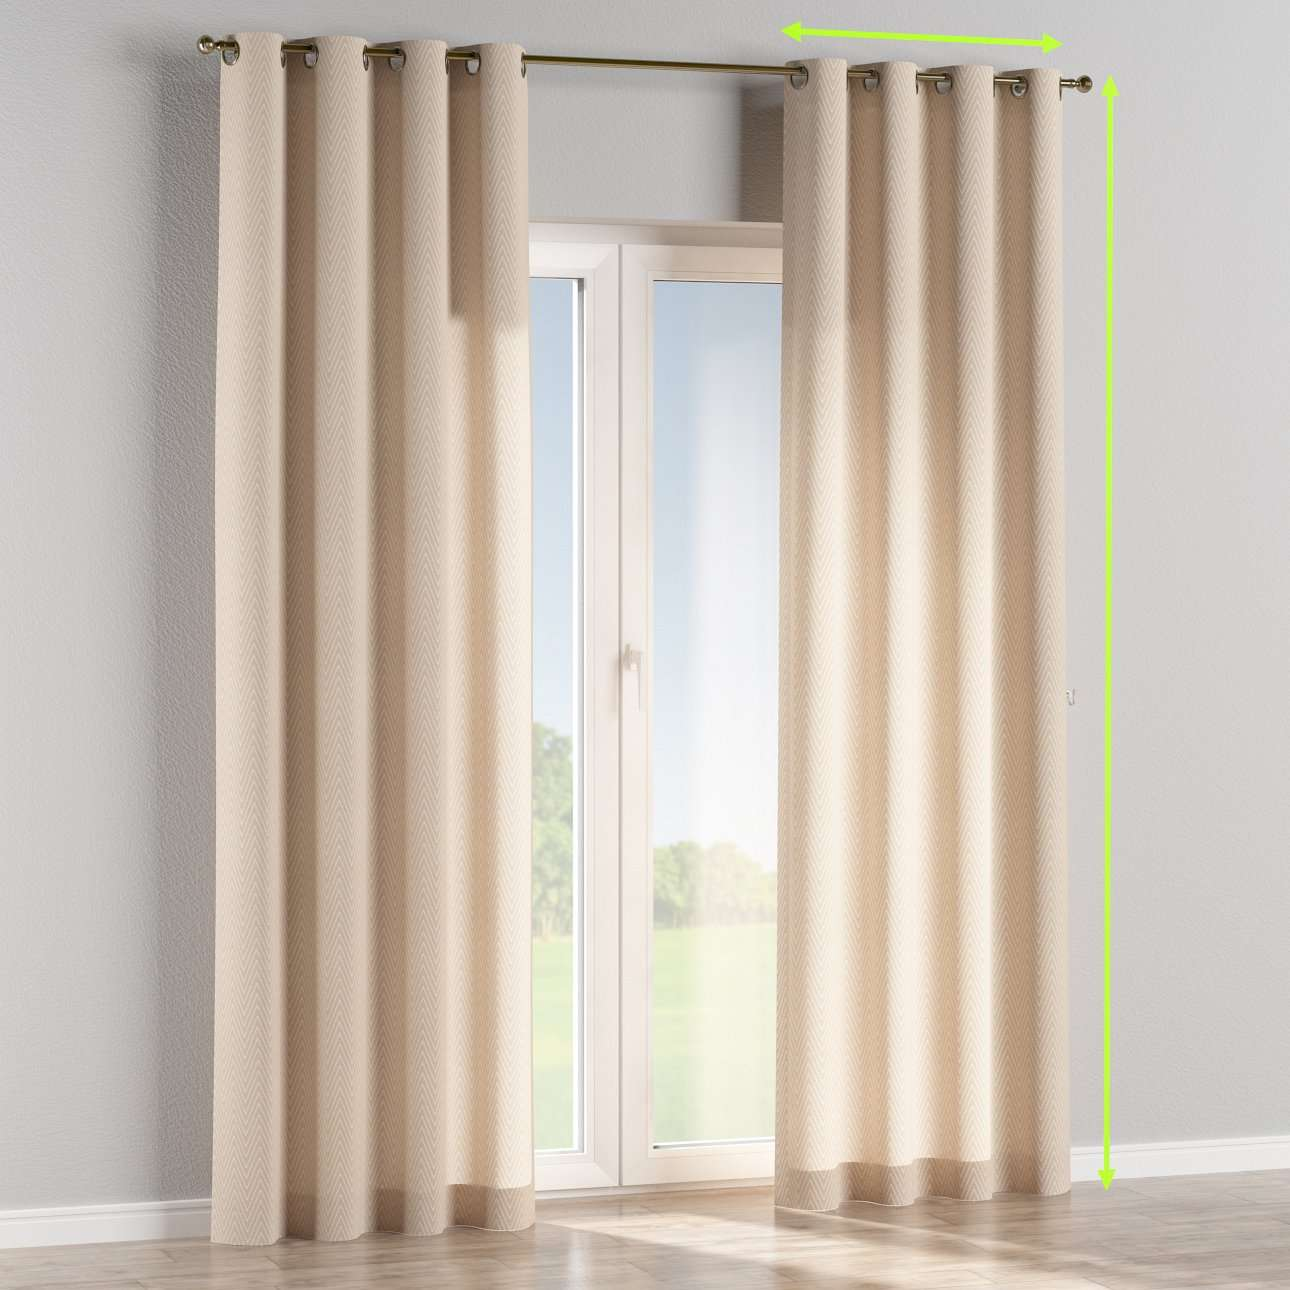 Eyelet lined curtains in collection Brooklyn, fabric: 137-91